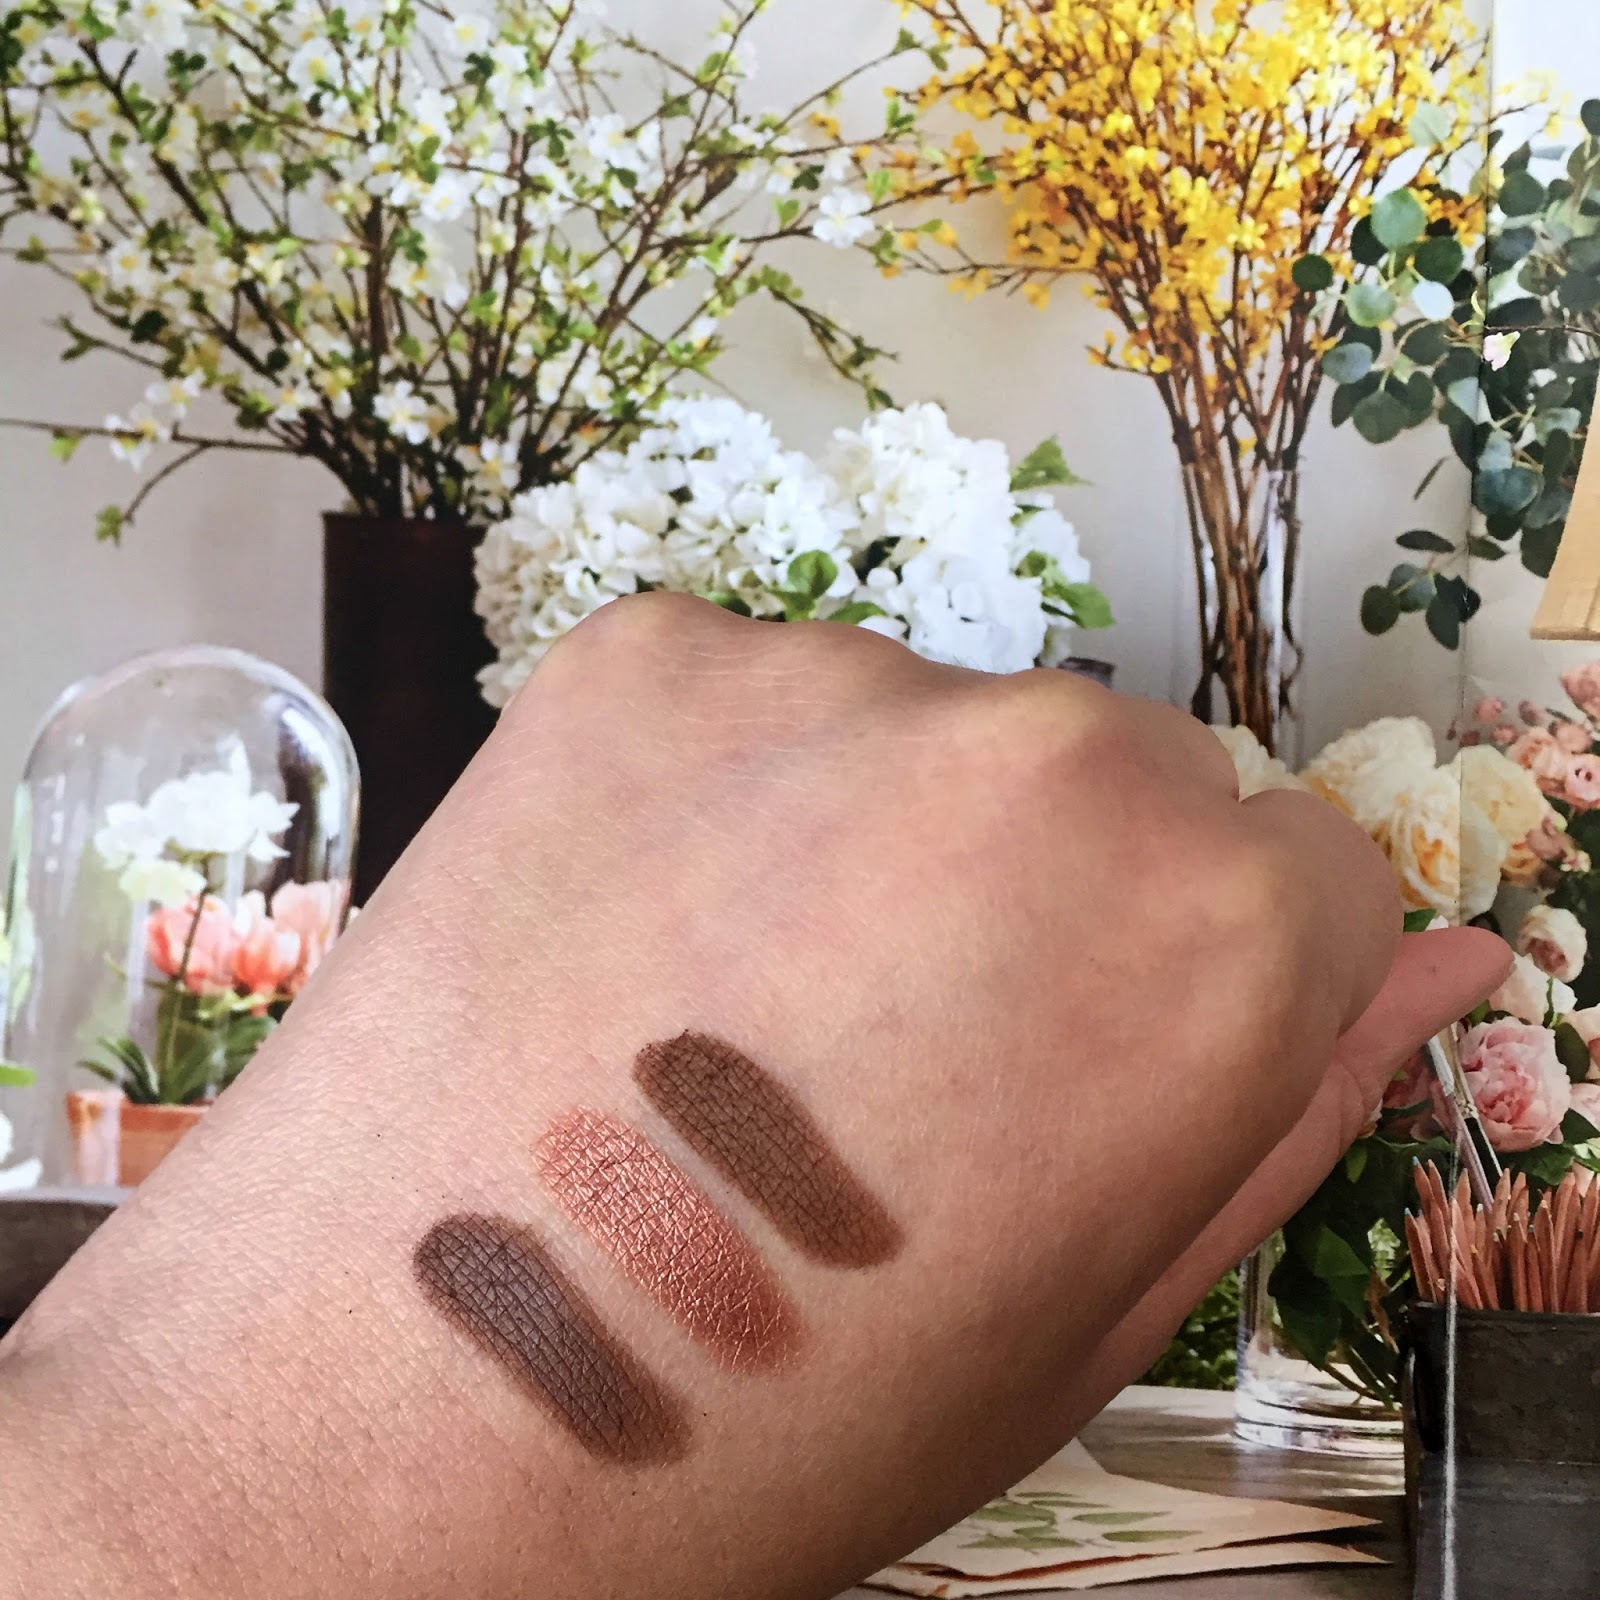 morphe 9b bronzed babe eyeshadow palette review  u0026 swatches